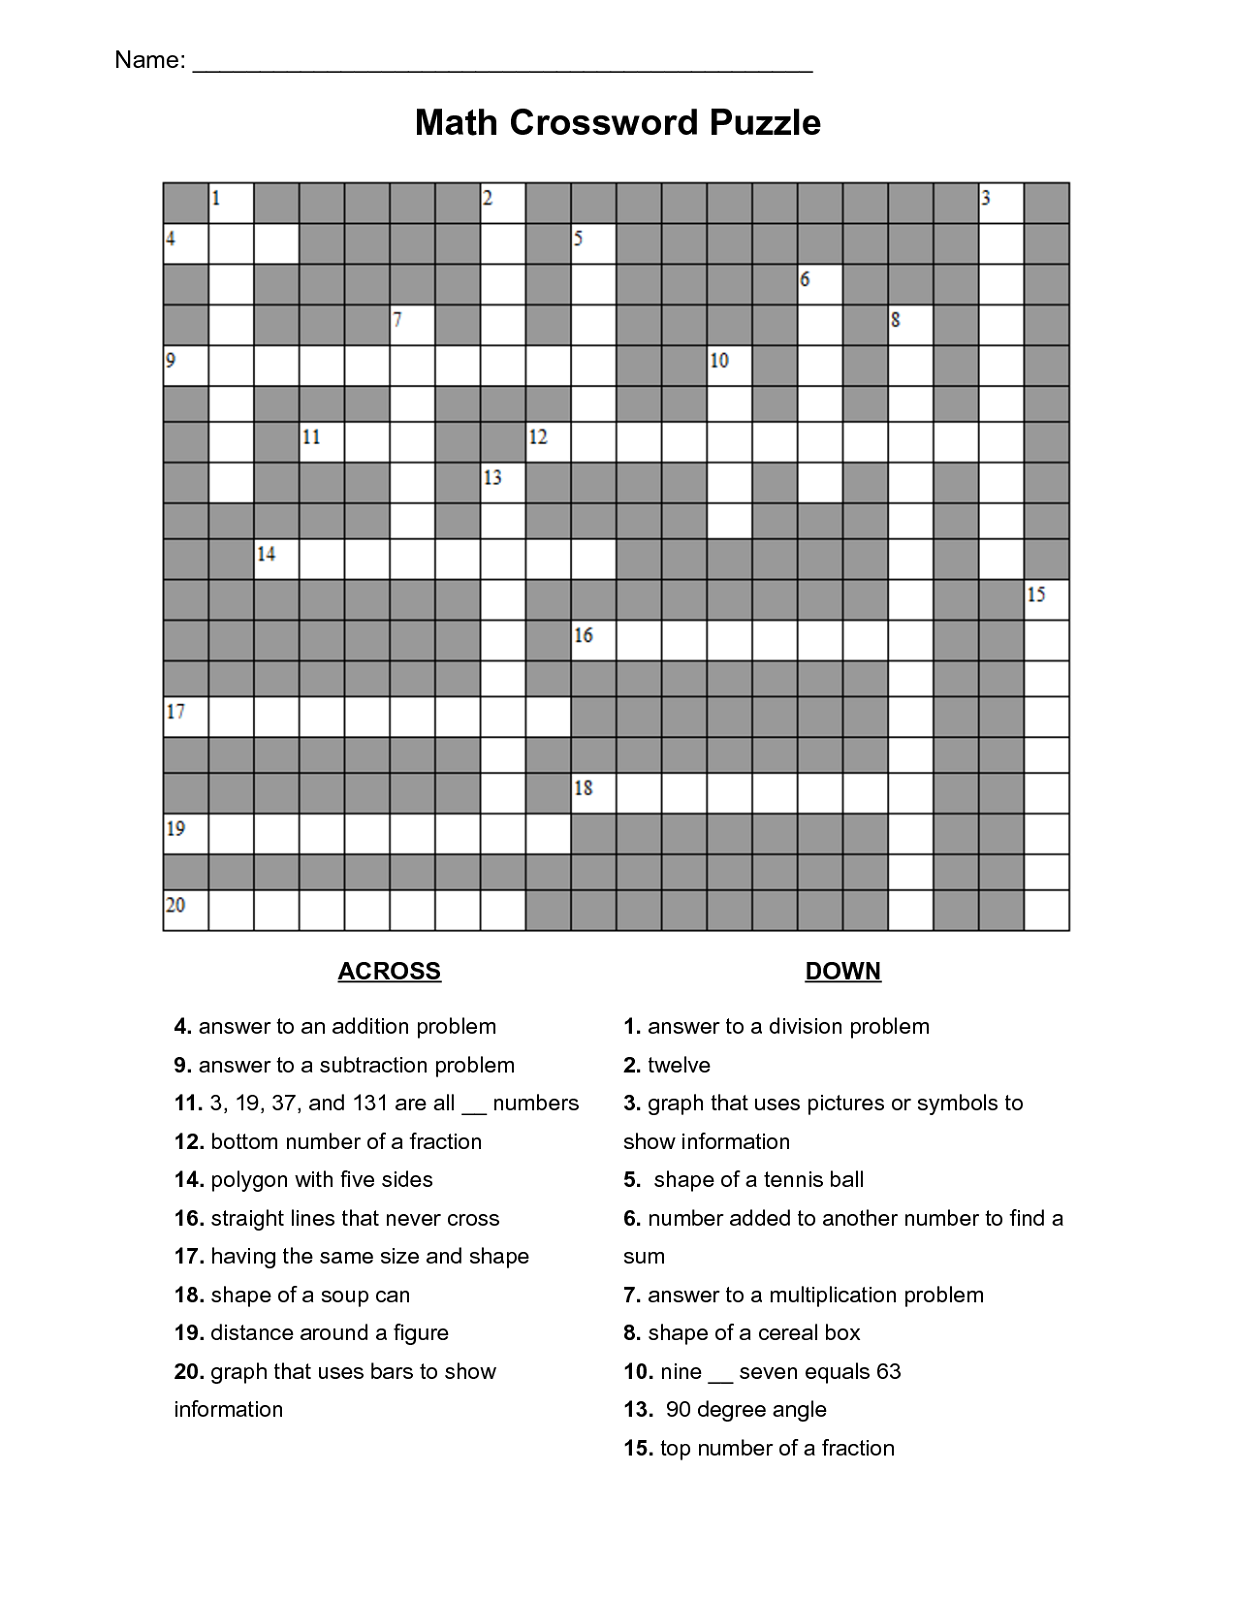 photograph about Math Crossword Puzzles Printable named Math Puzzles Printable for Discovering Math Worksheets for